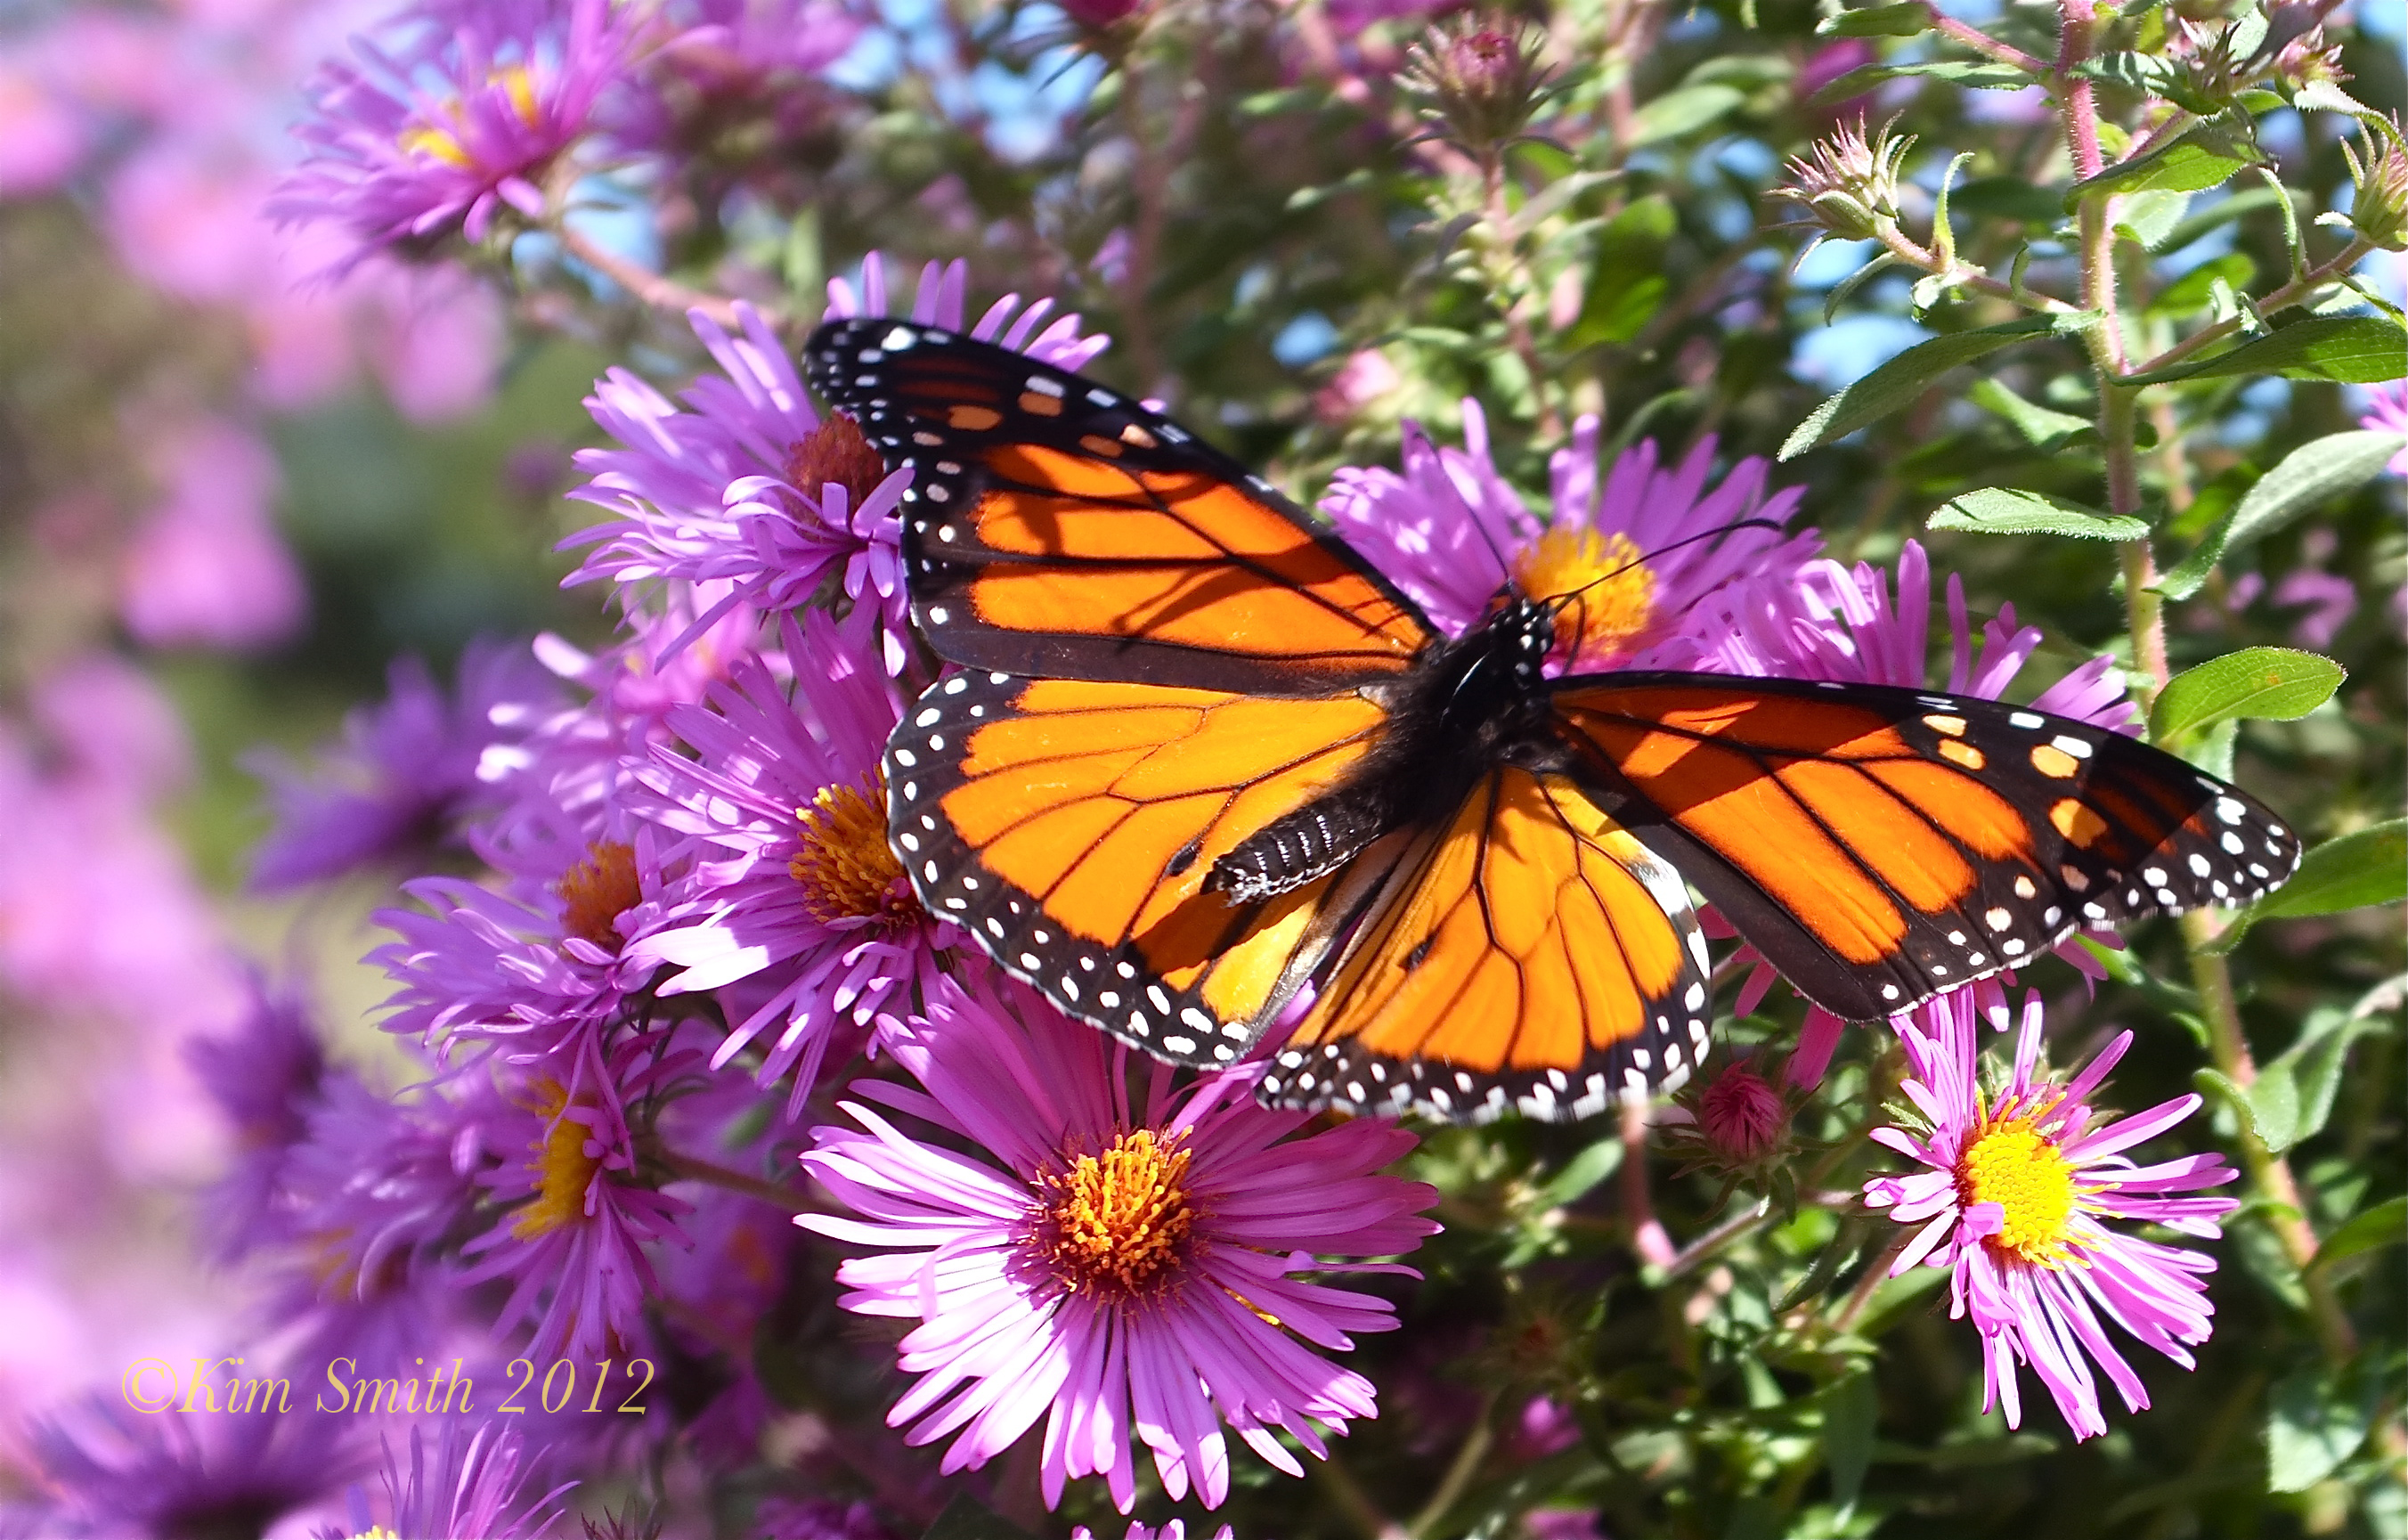 Monarch Butterfly Wallpaper HD Images 0anmpwf3 Yoanu 2704x1729